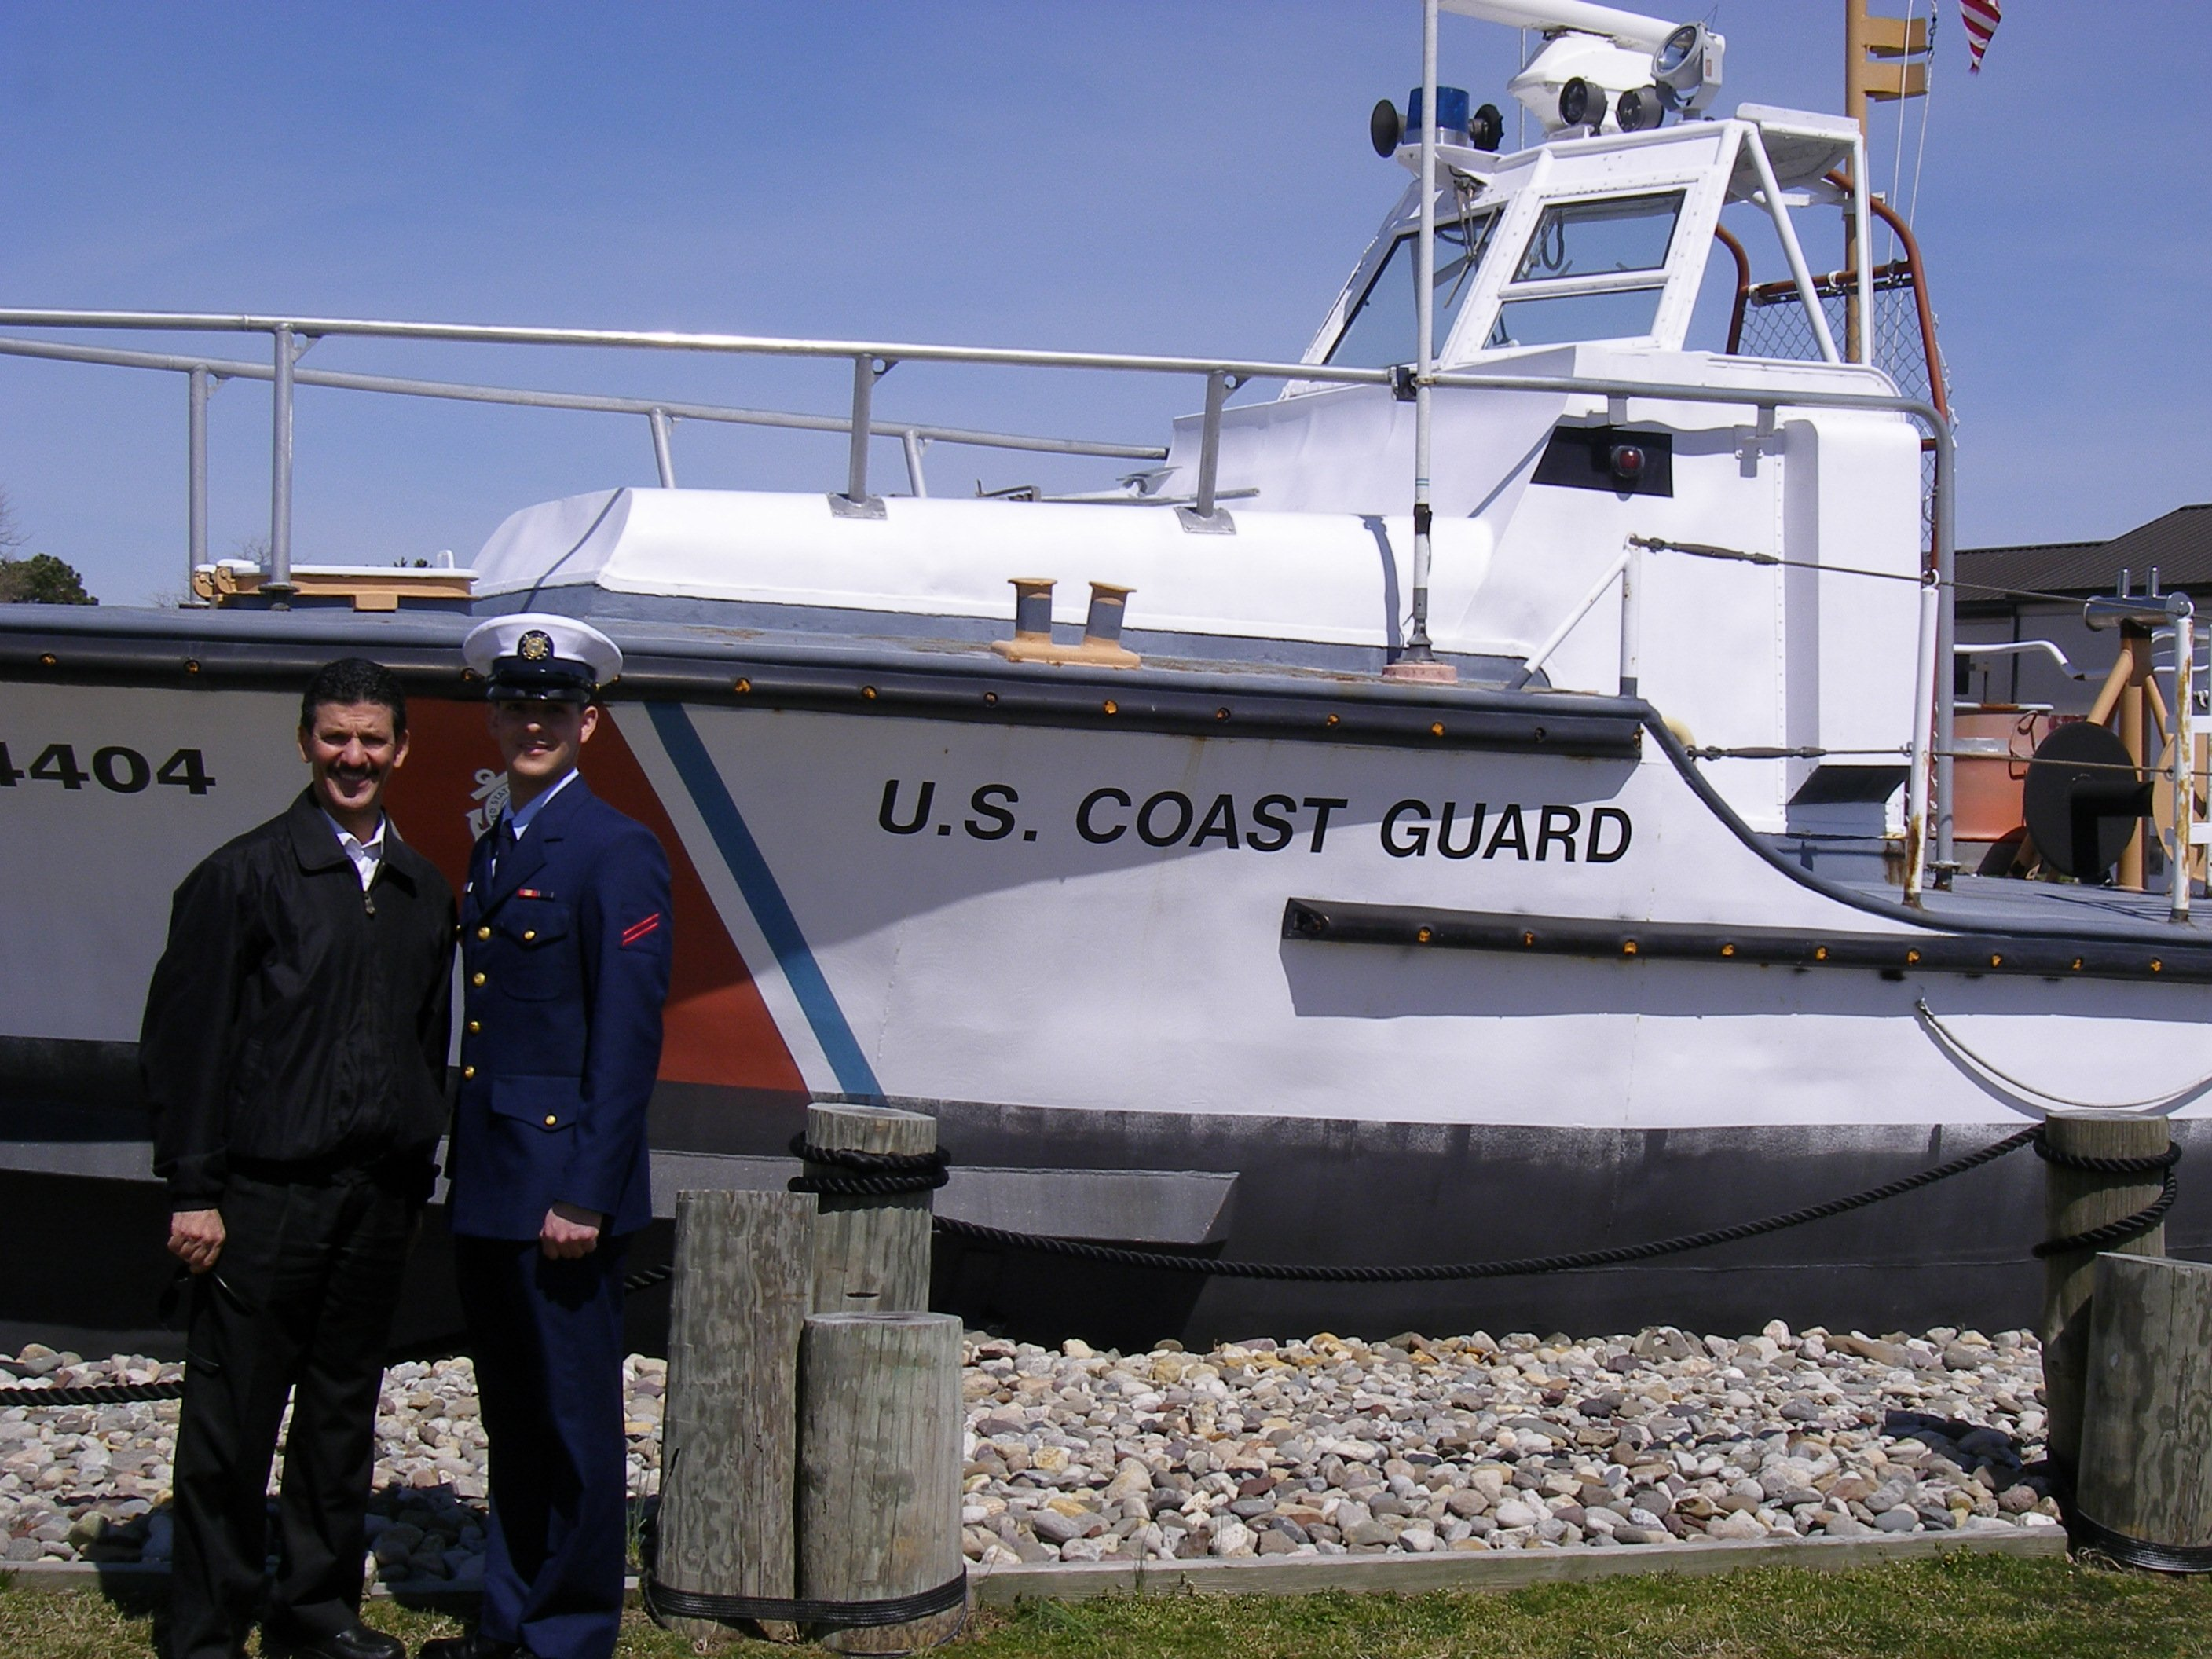 Brandon, a Rowan Student by a US Coast Guard Boat